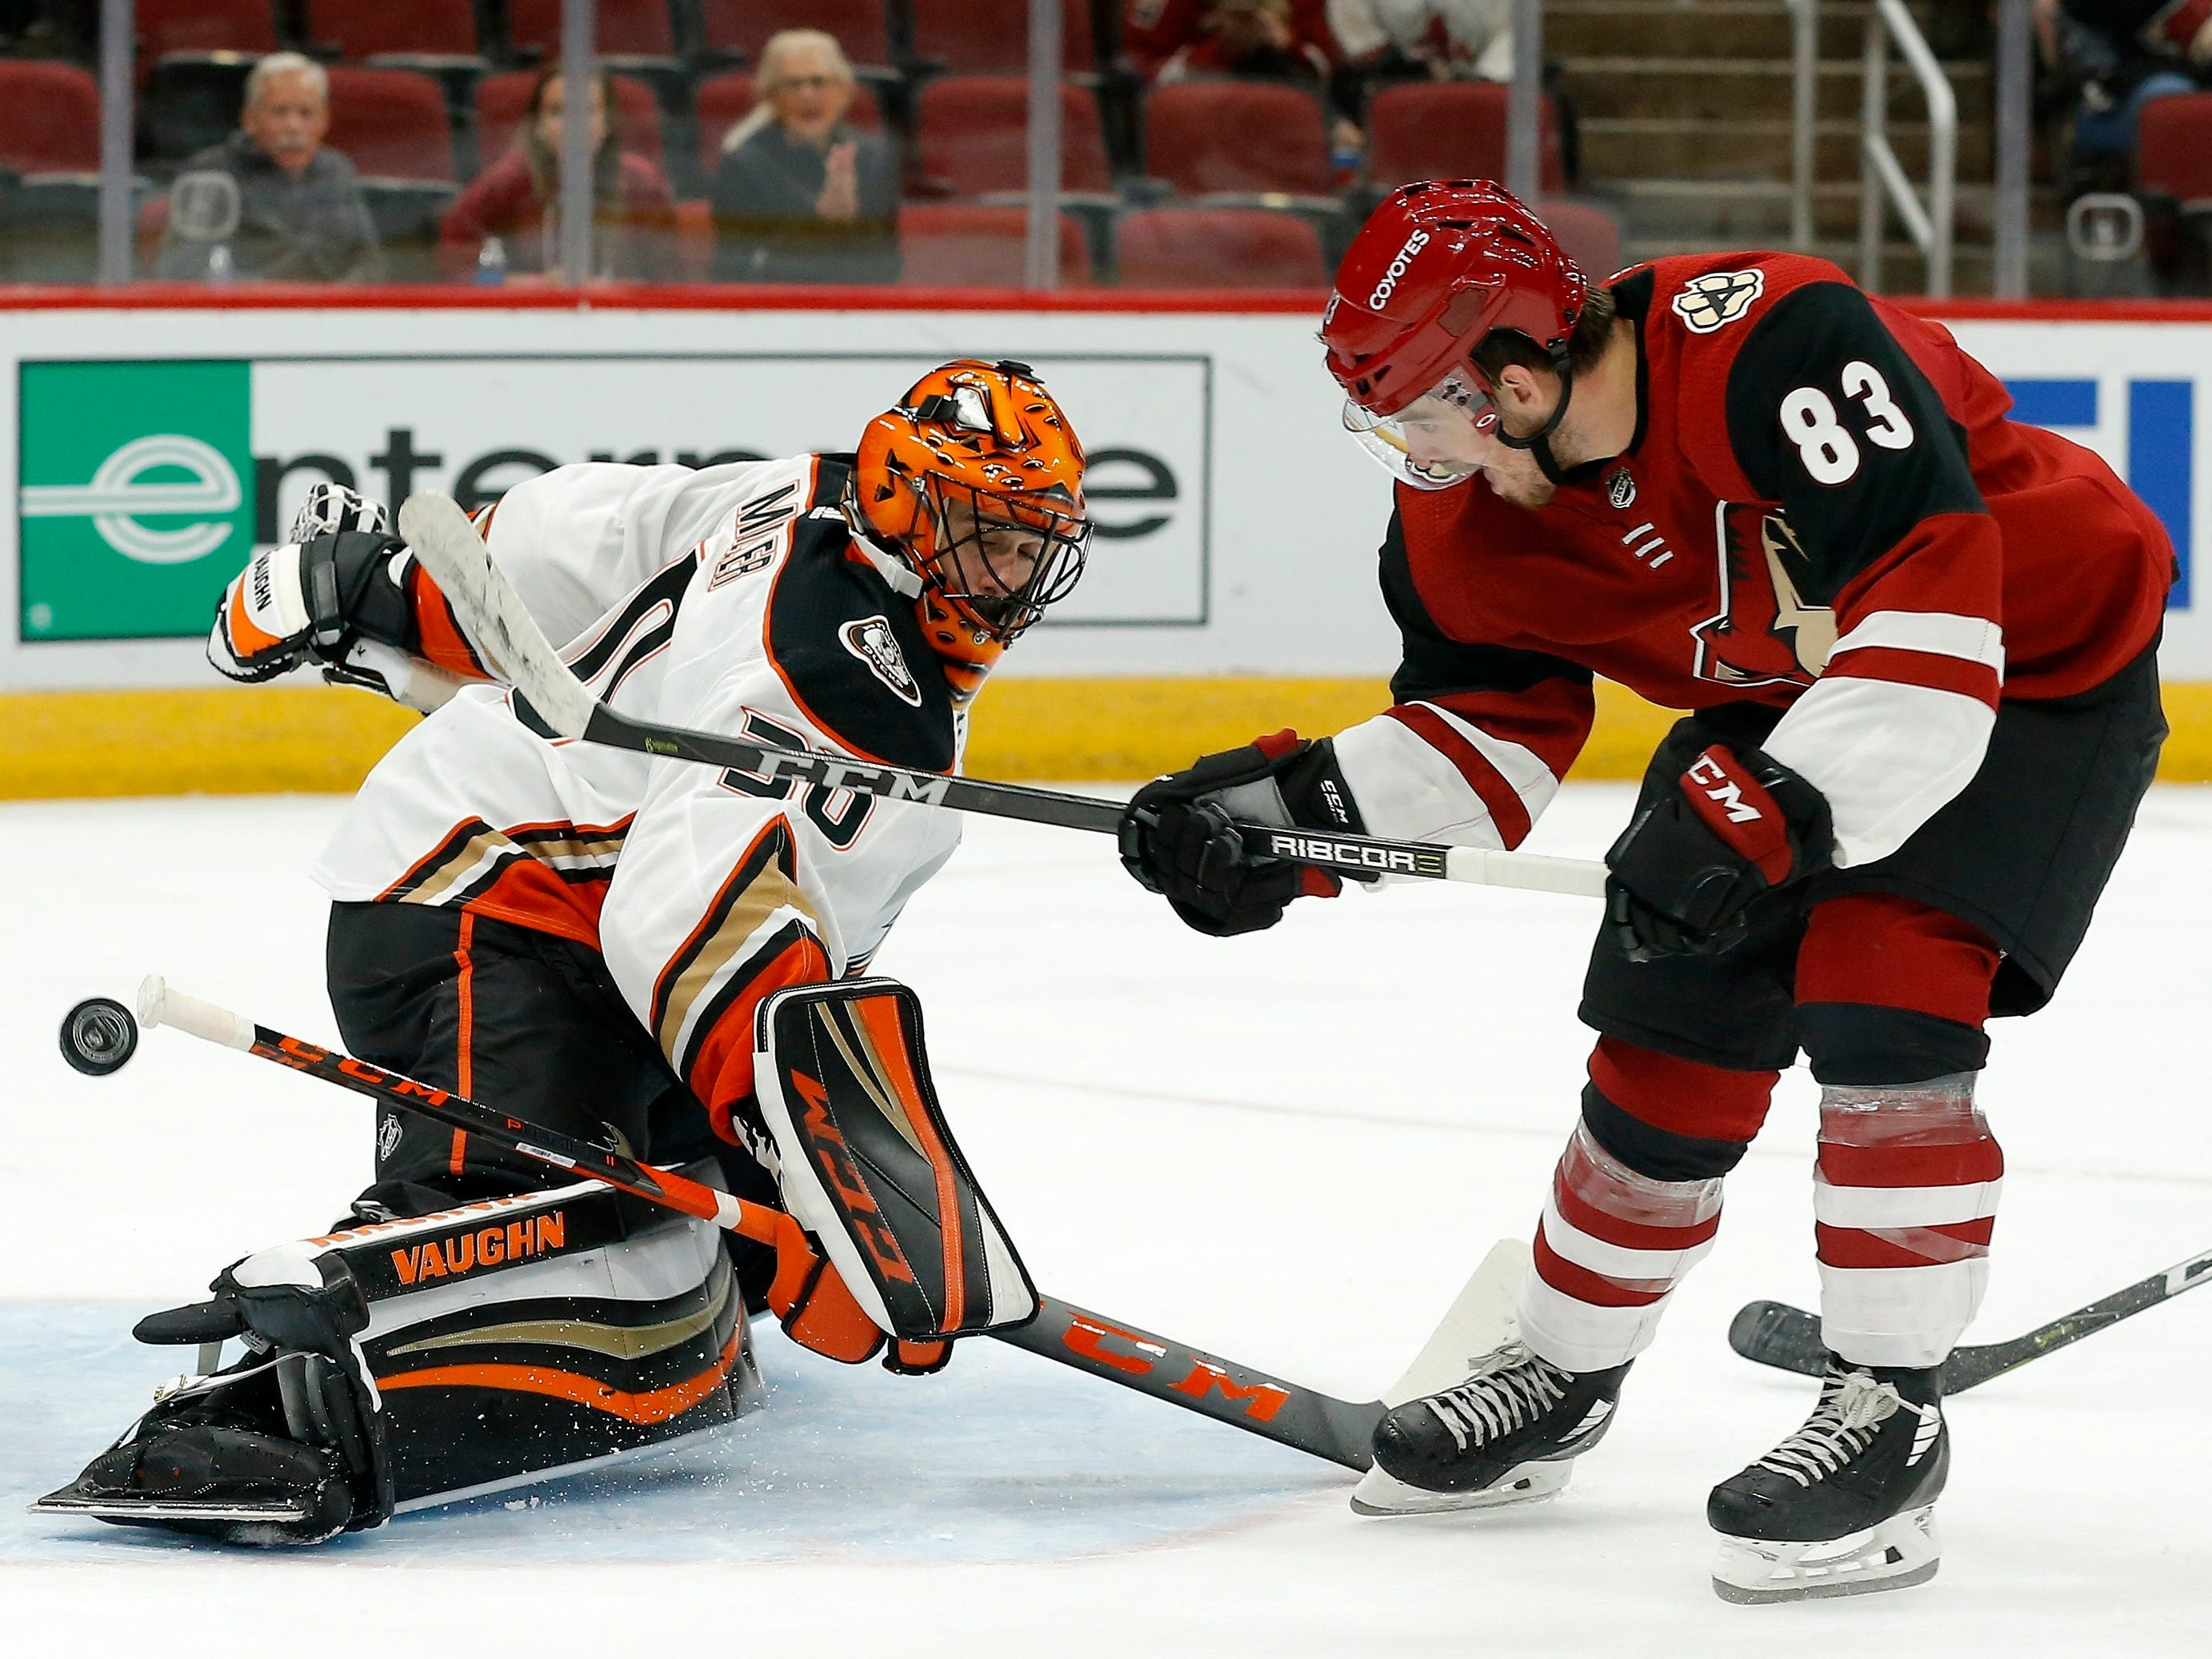 Arizona Coyotes' Conor Garland (83) scores a goal against Anaheim Ducks goaltender Ryan Miller during the second period of an NHL preseason hockey game Saturday, Sept. 22, 2018, in Glendale, Ariz.